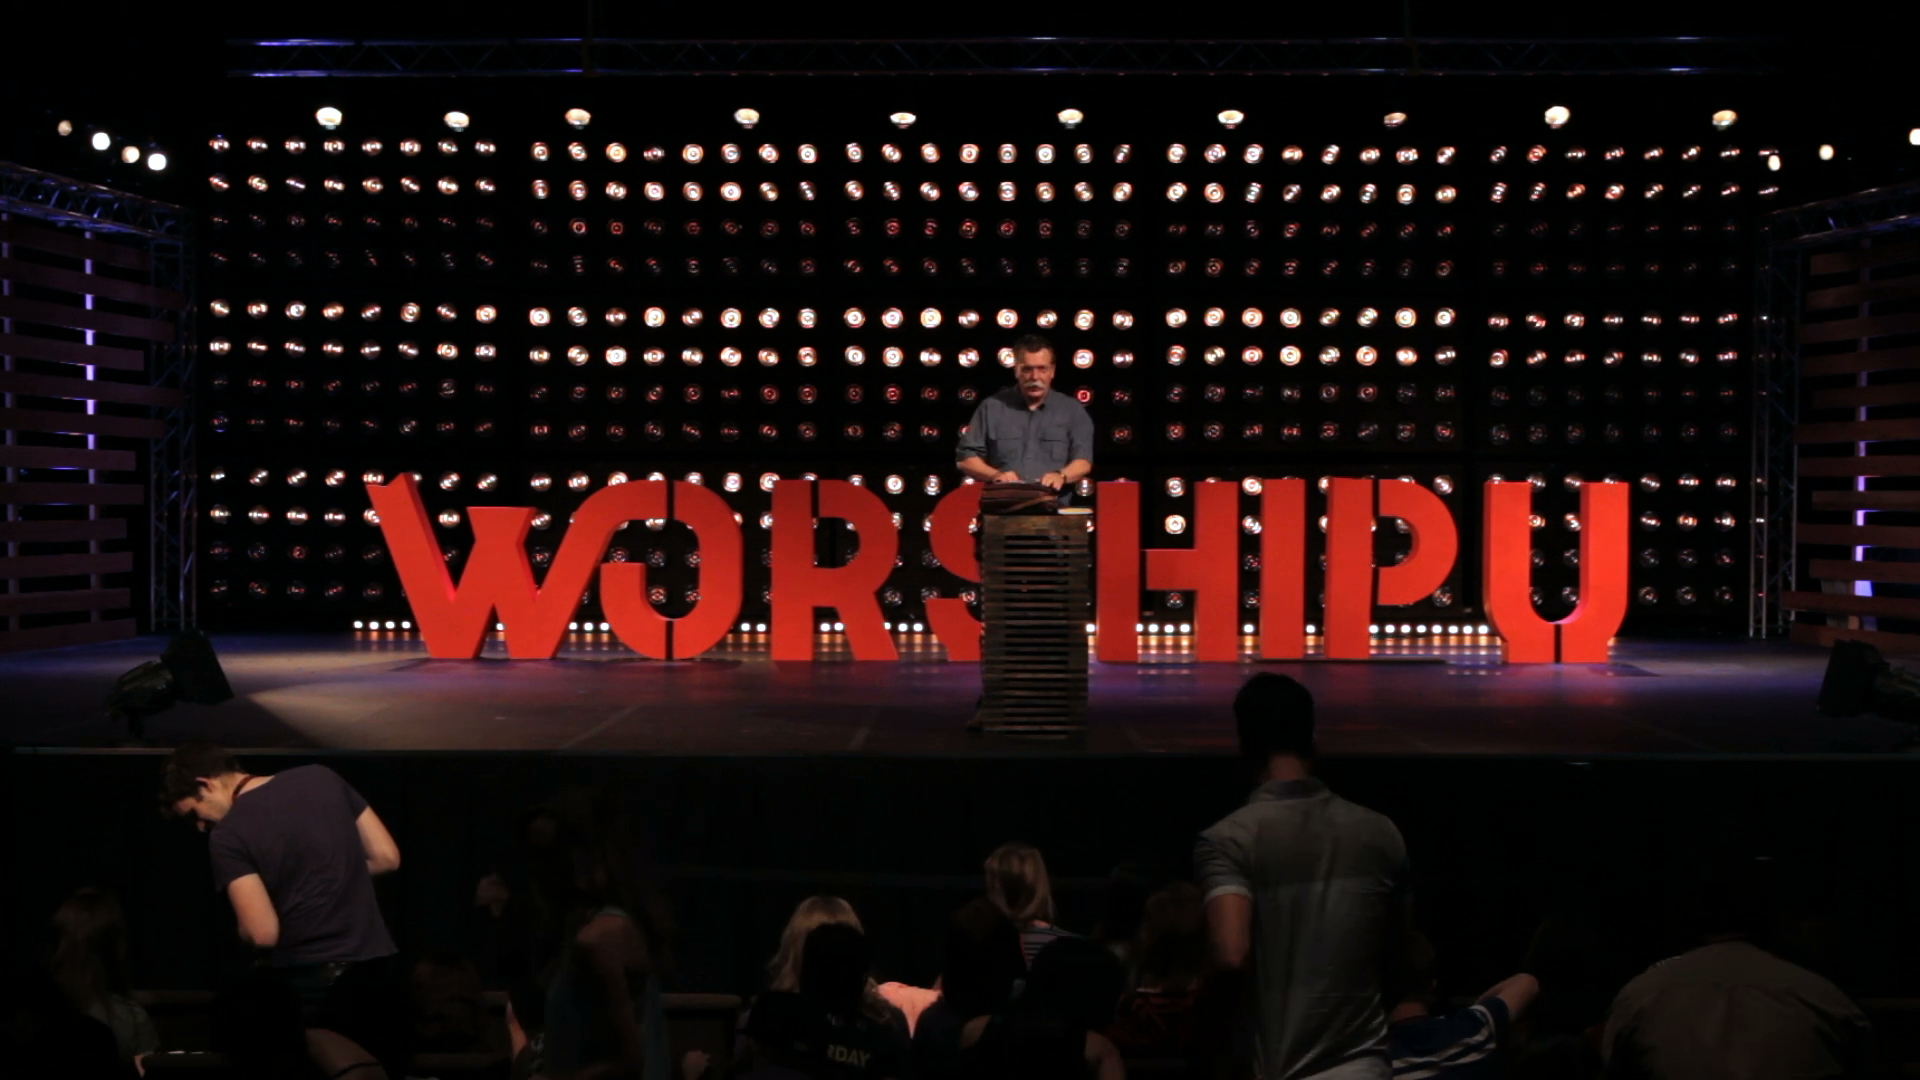 8.2 worship in the word ray hughes